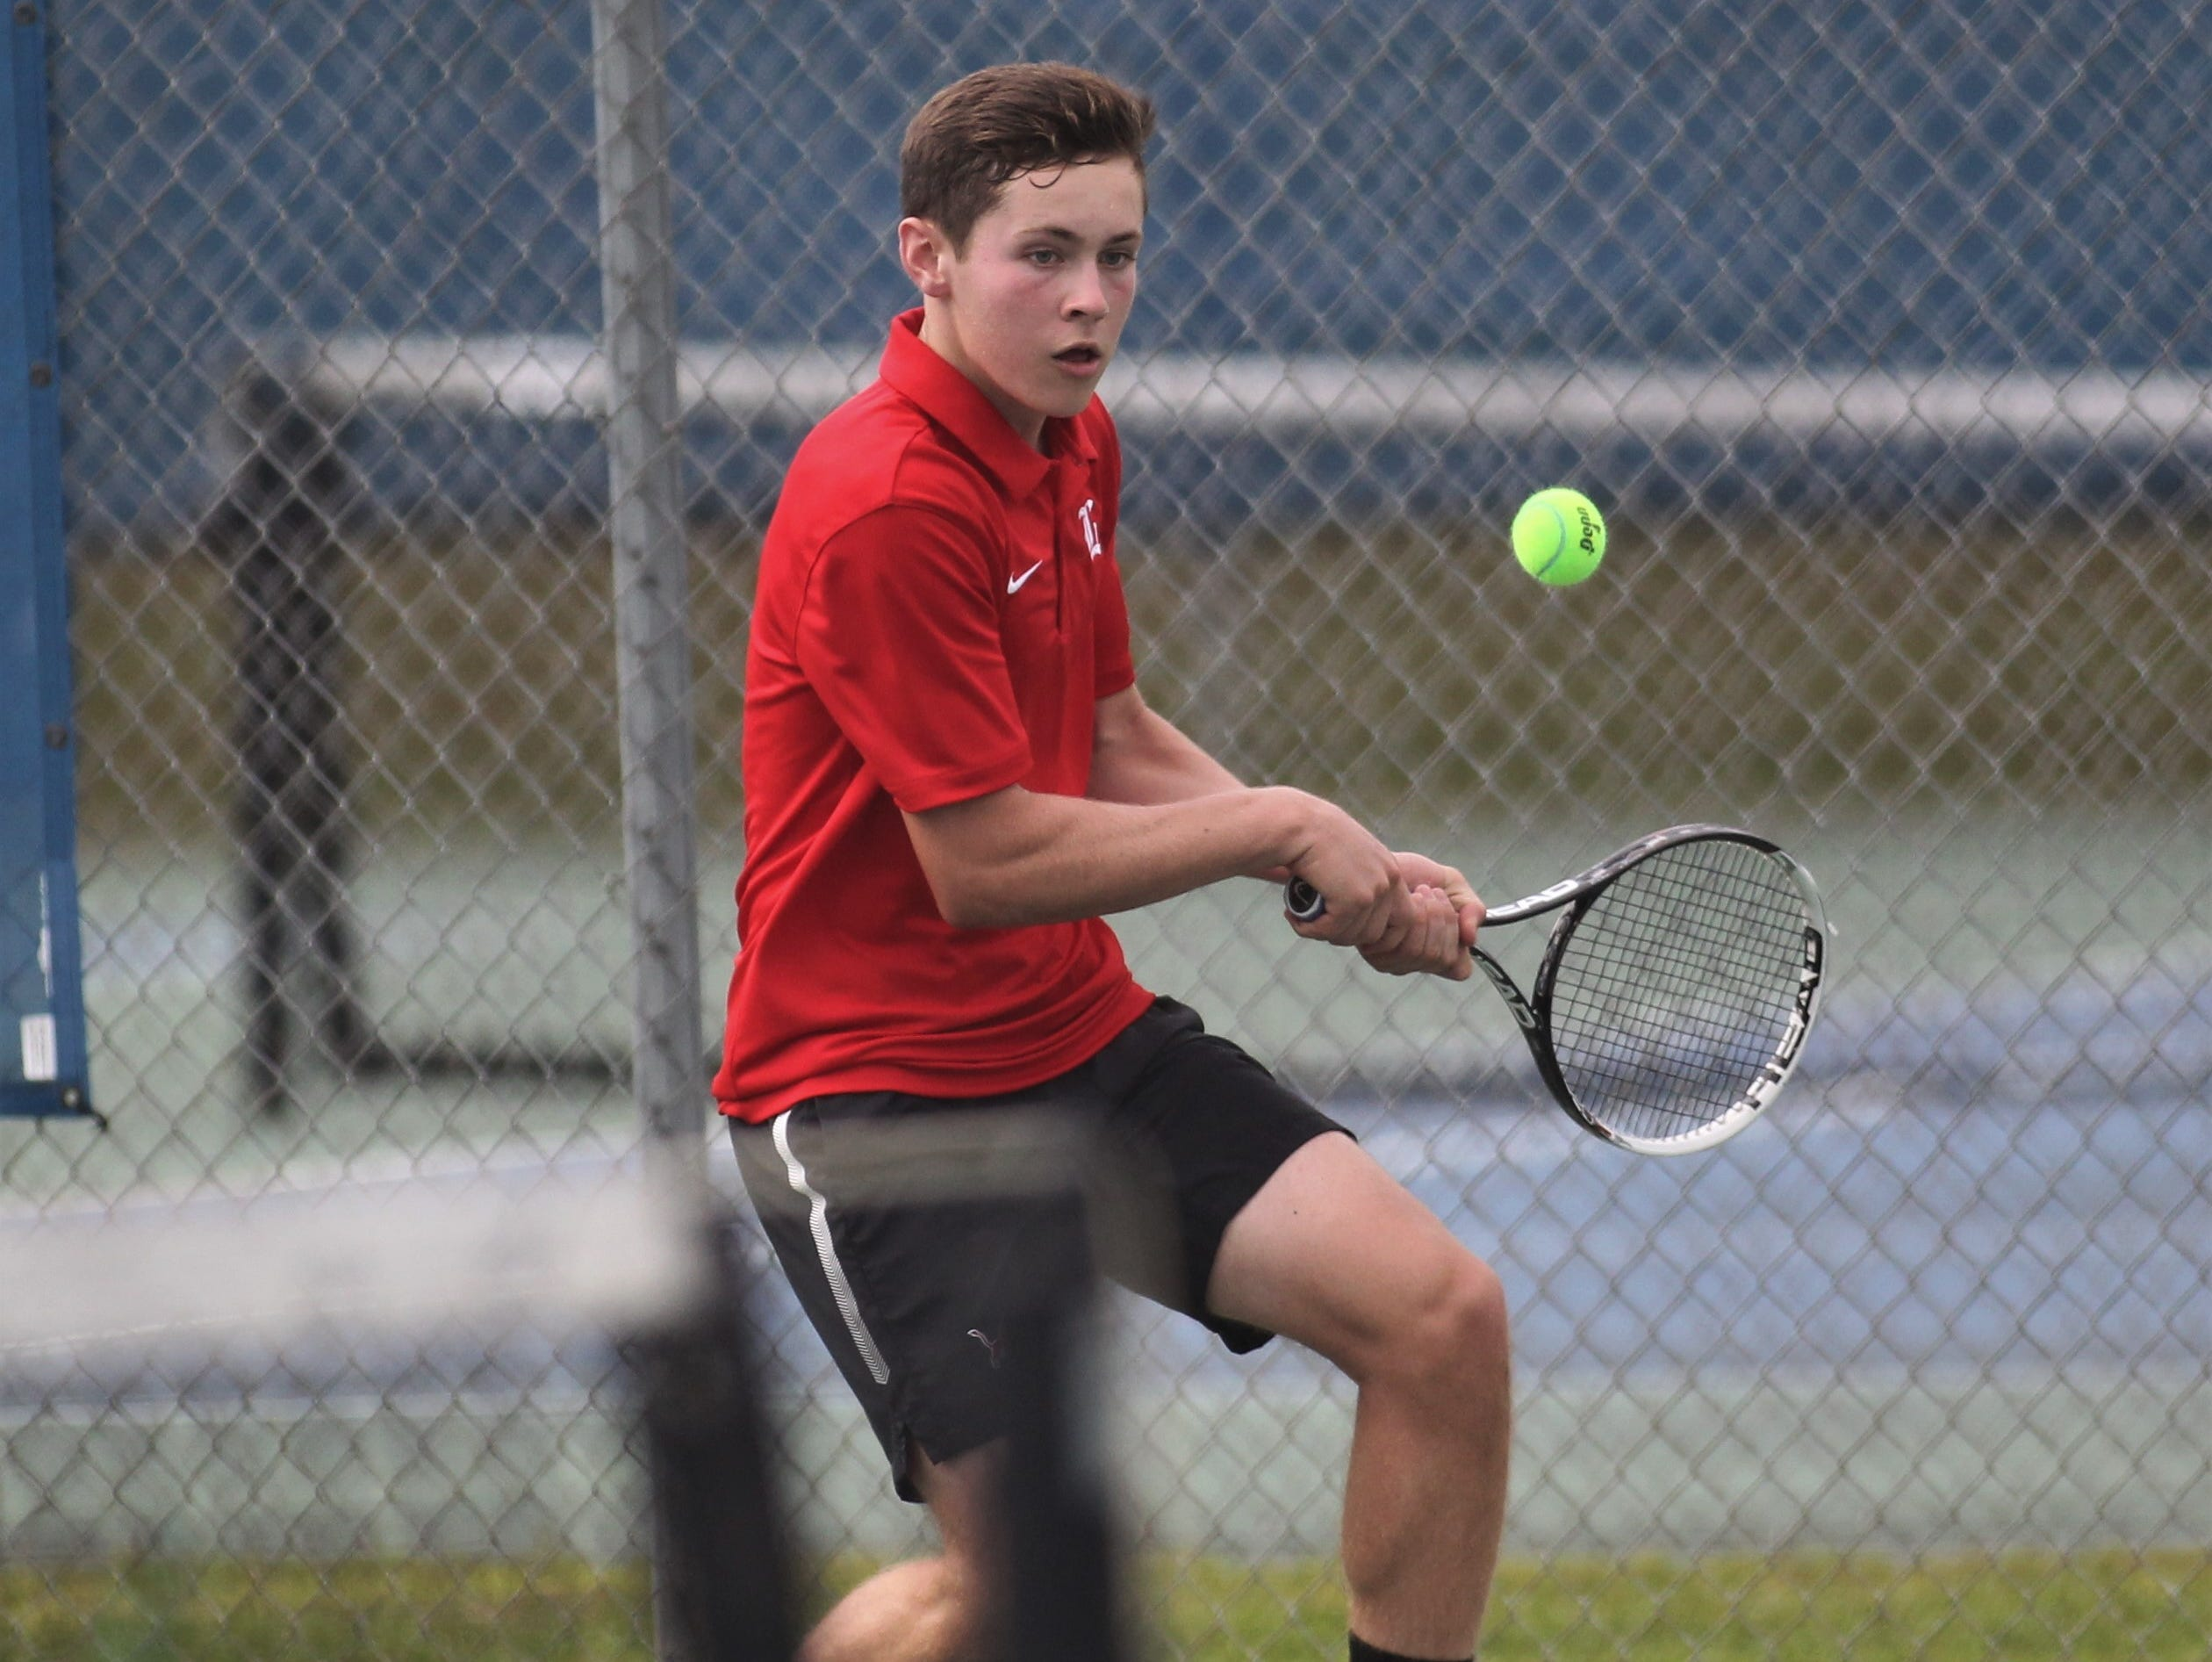 Leon sophomore Jack Long plays during the high school boys and girls city tennis tournament at Tom Brown Park on Thursday, March 14, 2019.